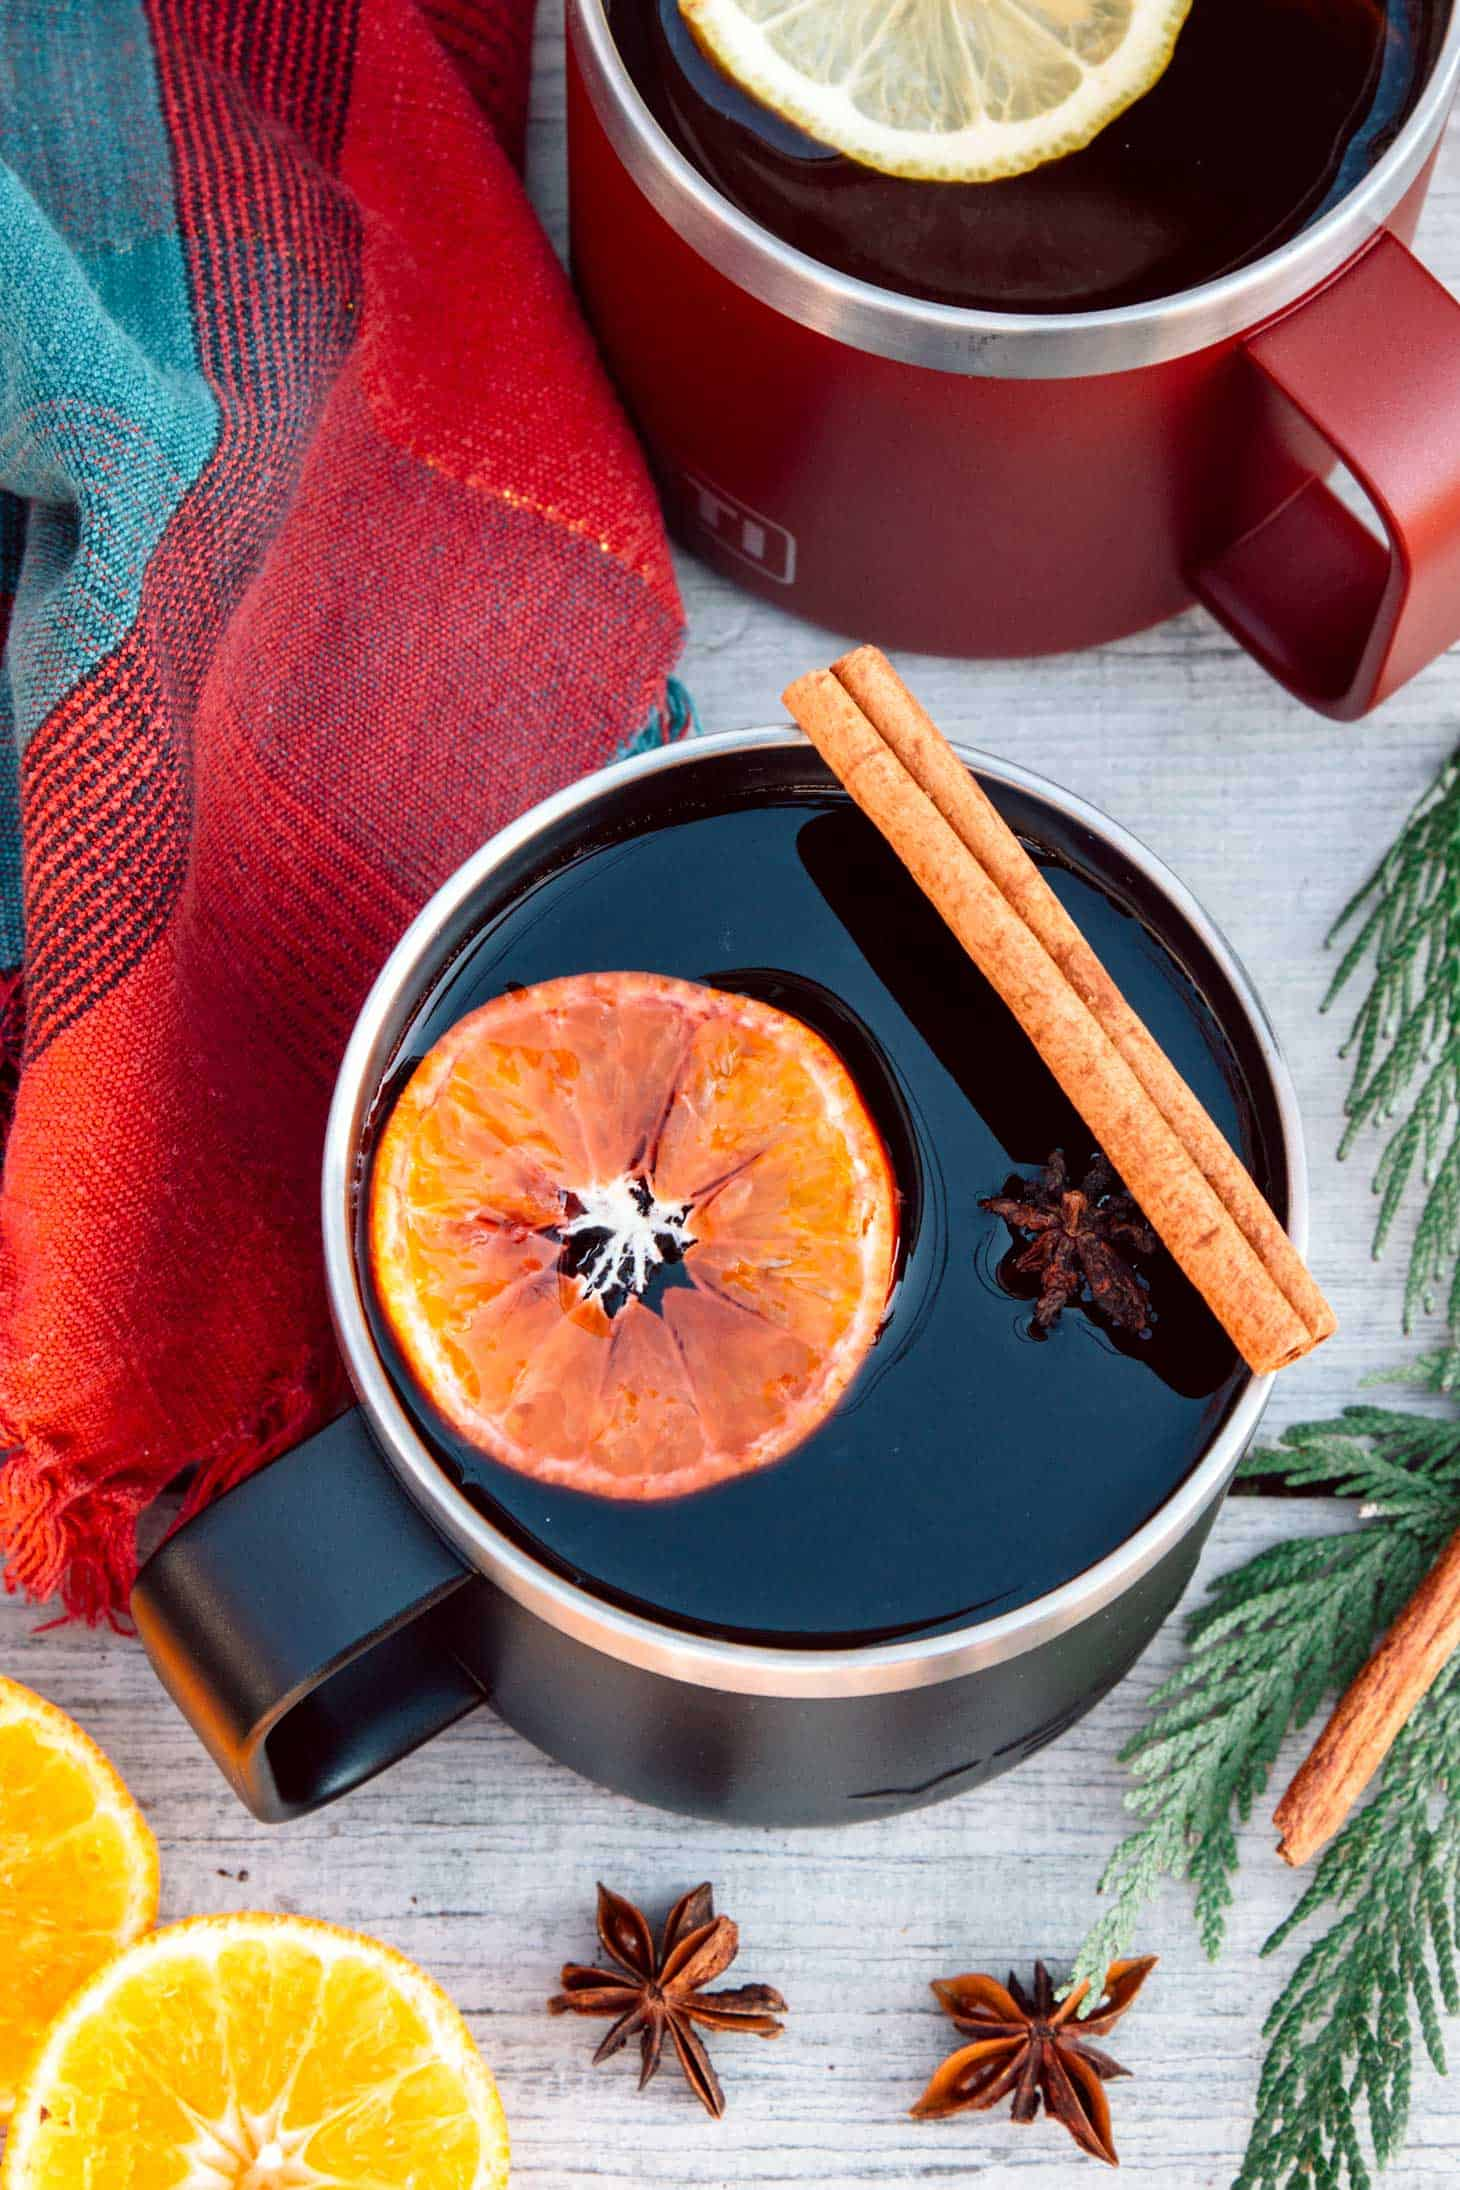 Hot mulled wine in a mug